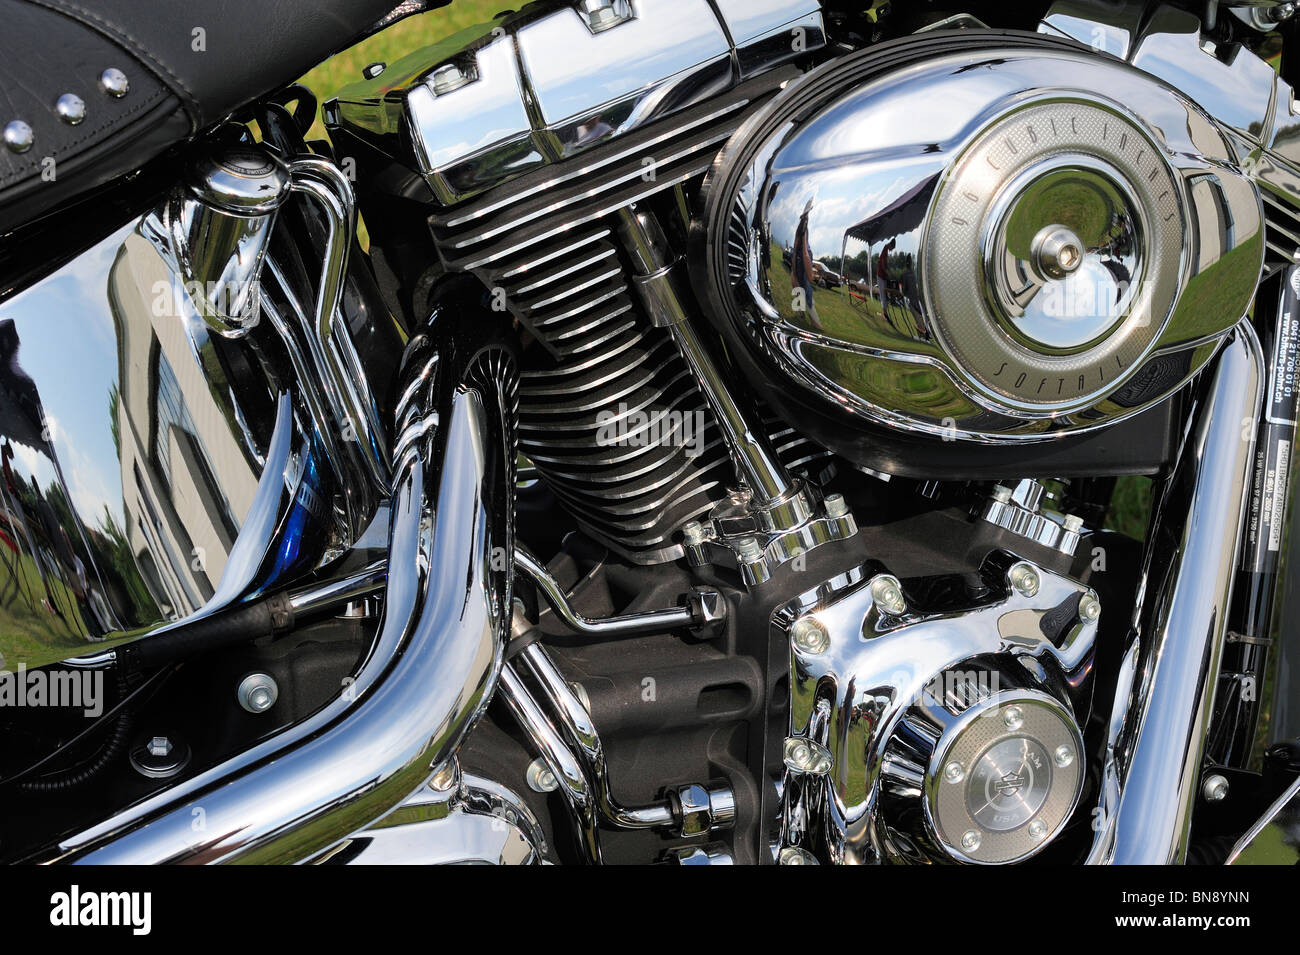 Close up detail of the engine of a Harley Davidson motorcycle. - Stock Image